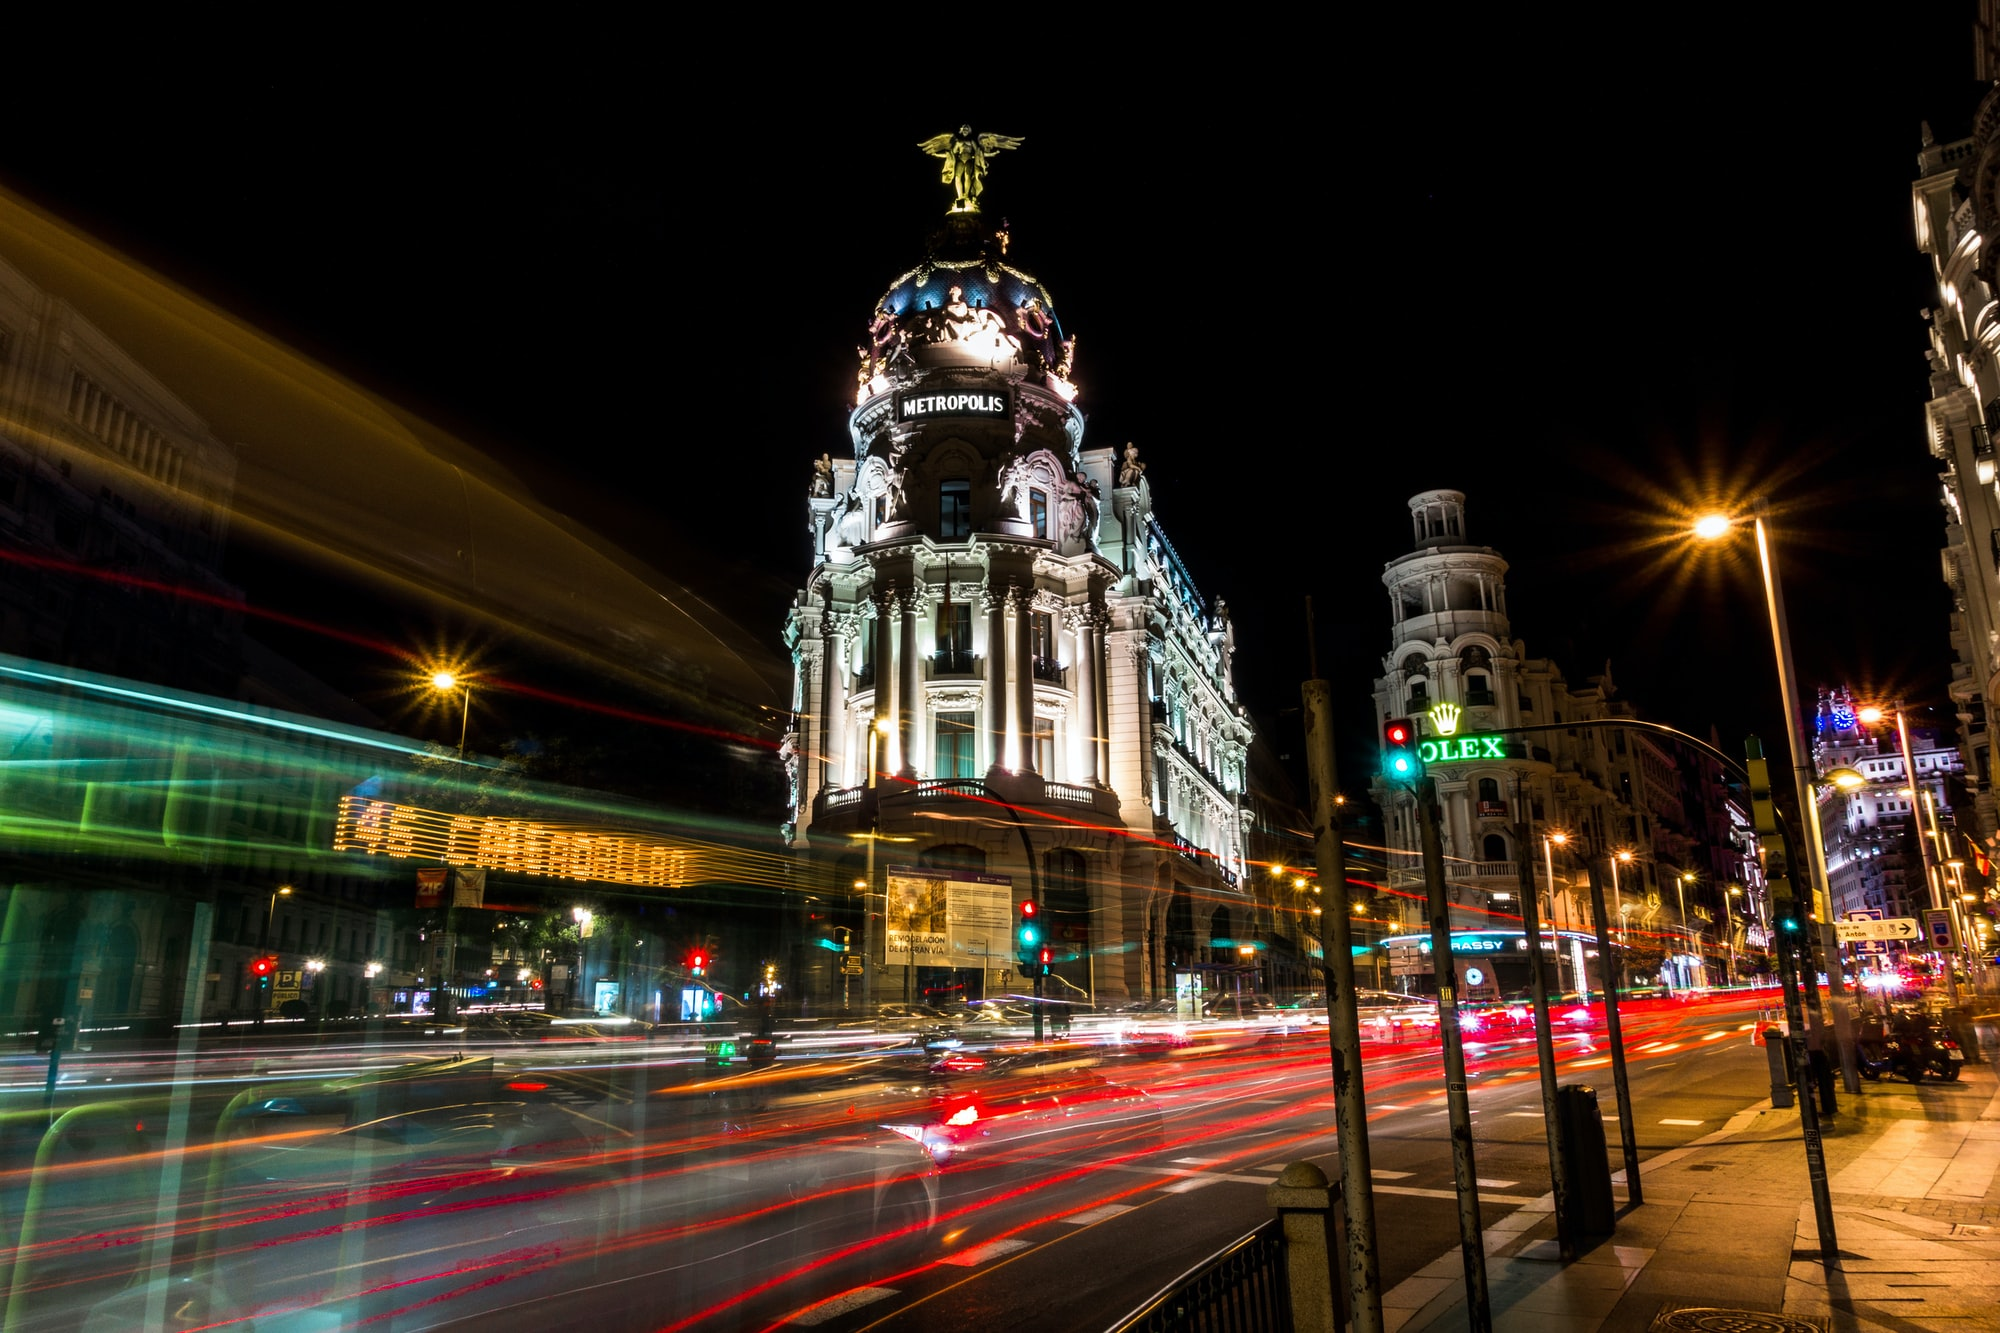 A bus driving by at night and a wonderful long-exposure capture in the beautiful city center of Madrid Spain. Please consider adding credit to the link in my bio :-).